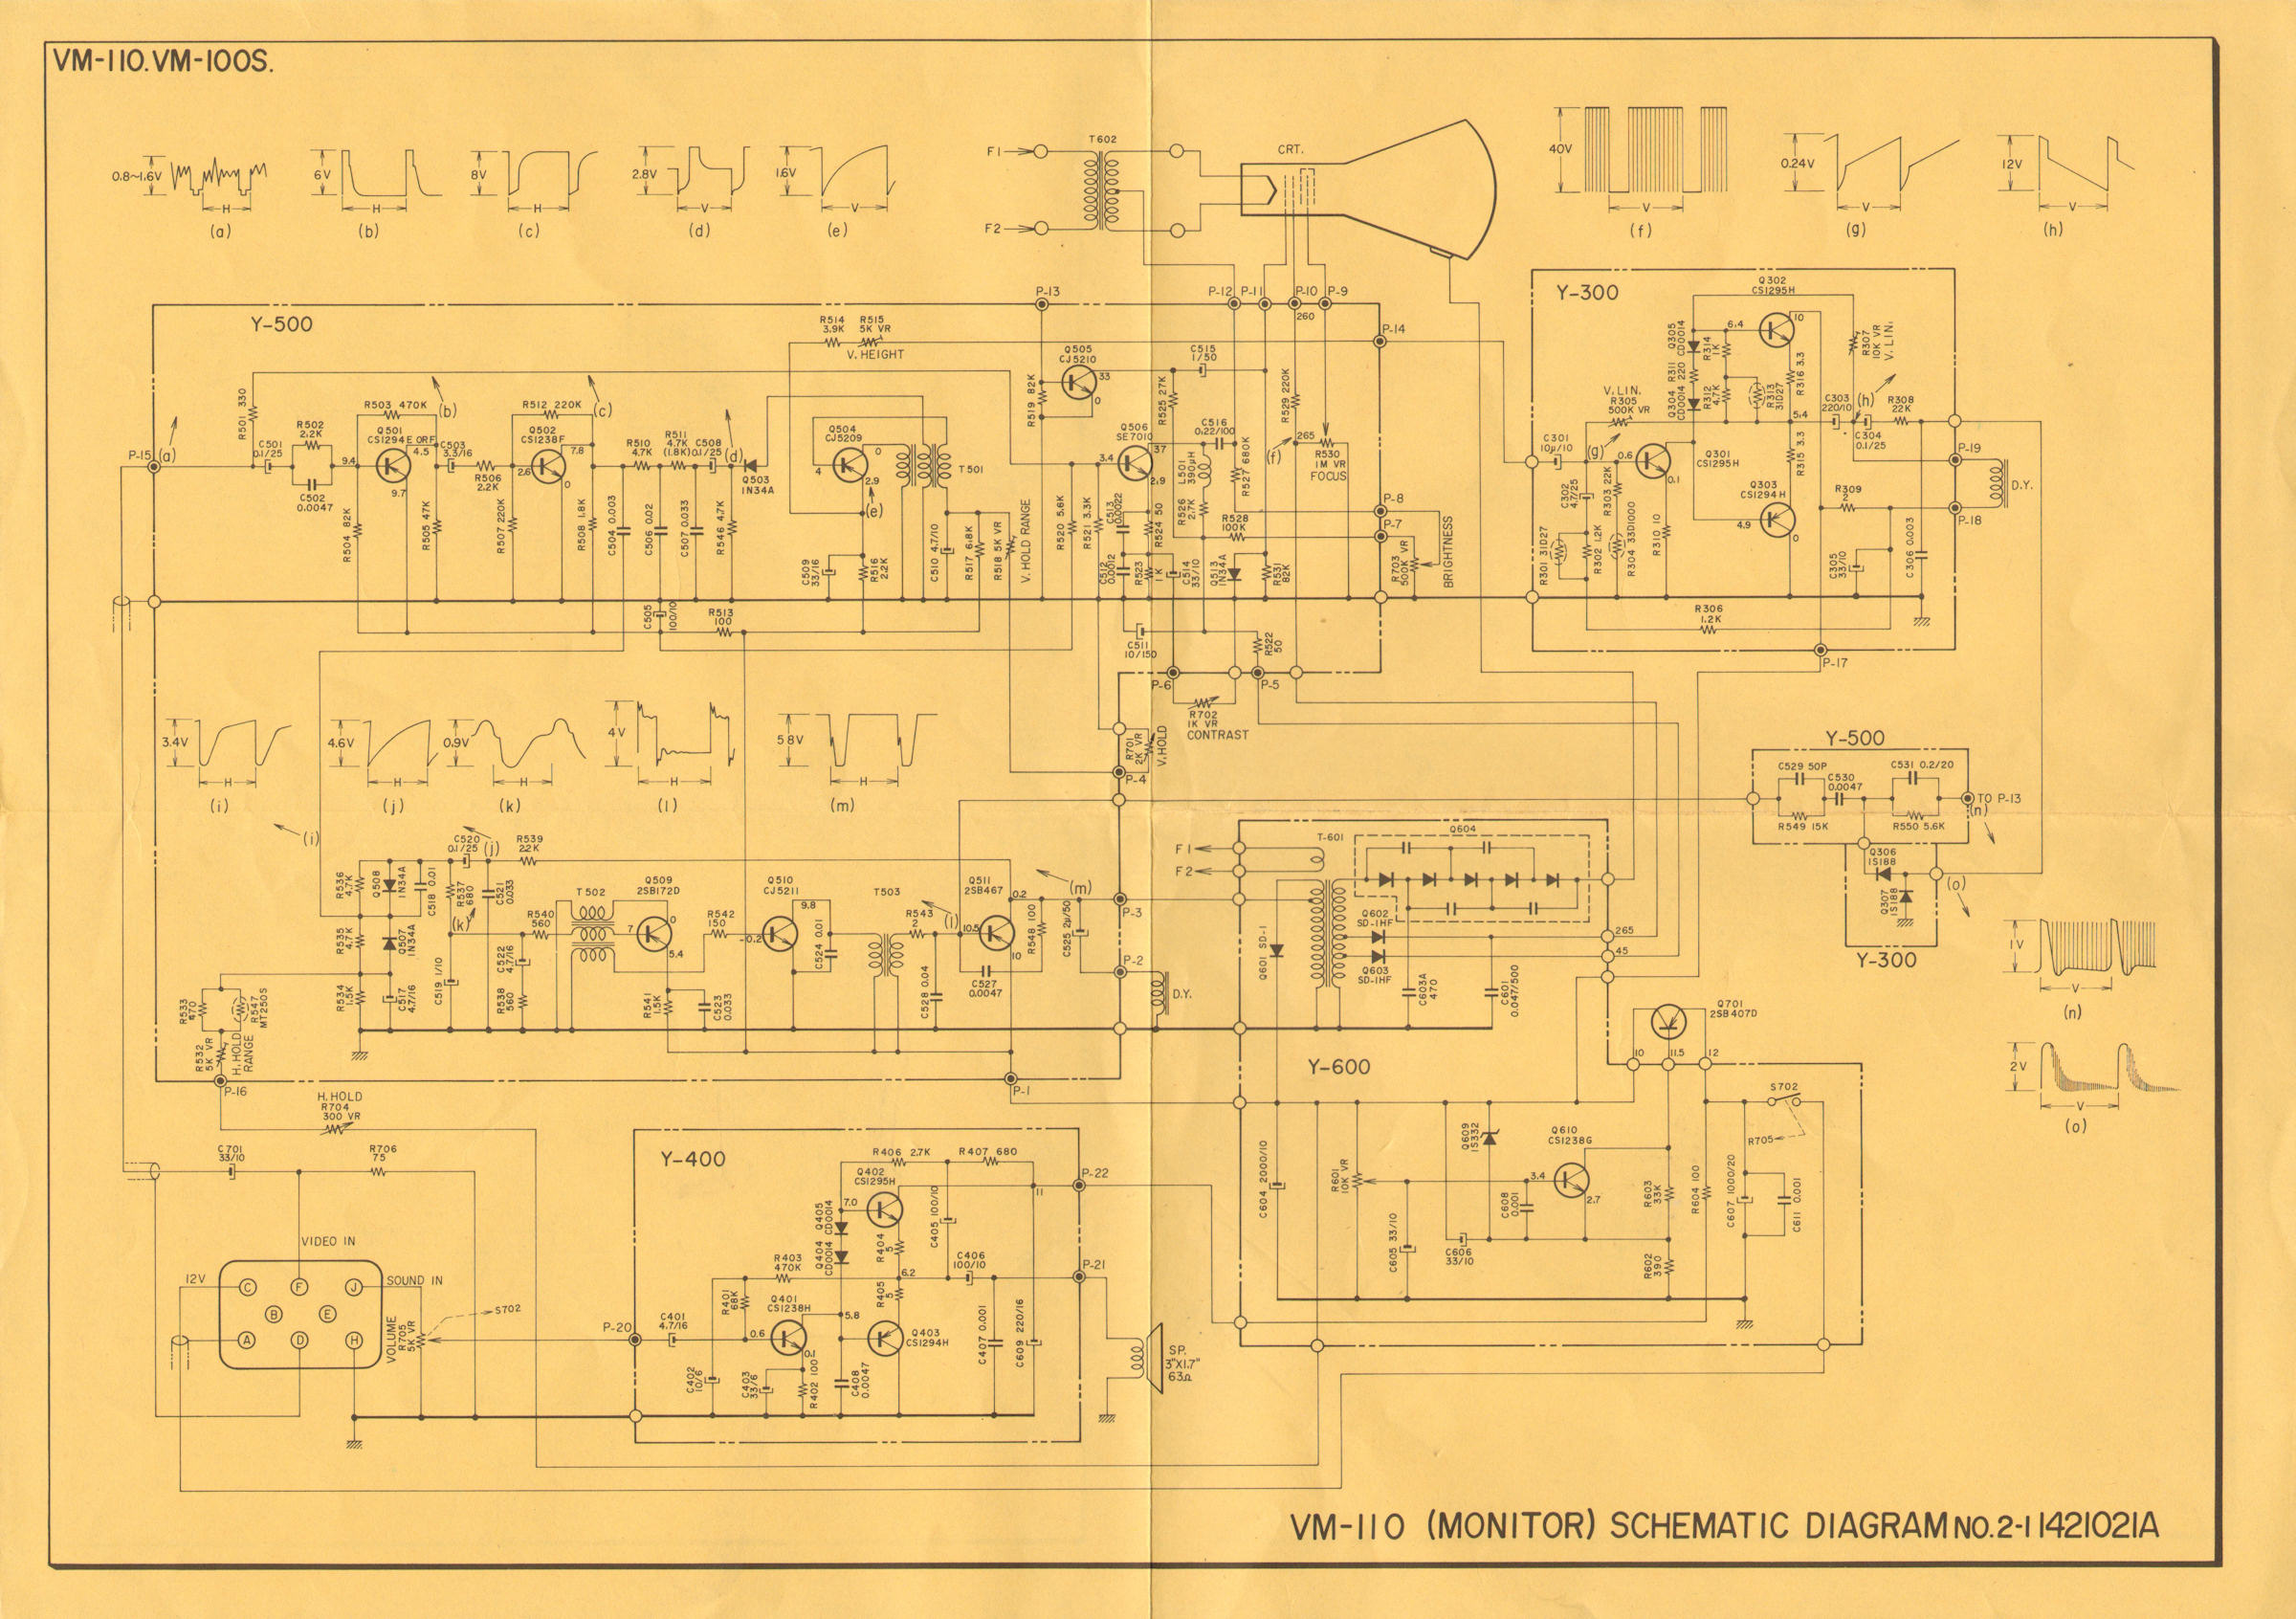 Labguys World Goldmark I Field Sequential Color Tv Project Coil Inductance Meter Circuit Diagram Akai Vm 100 3 Inch Crt Bw Video Monitor Circa 1972 20130803